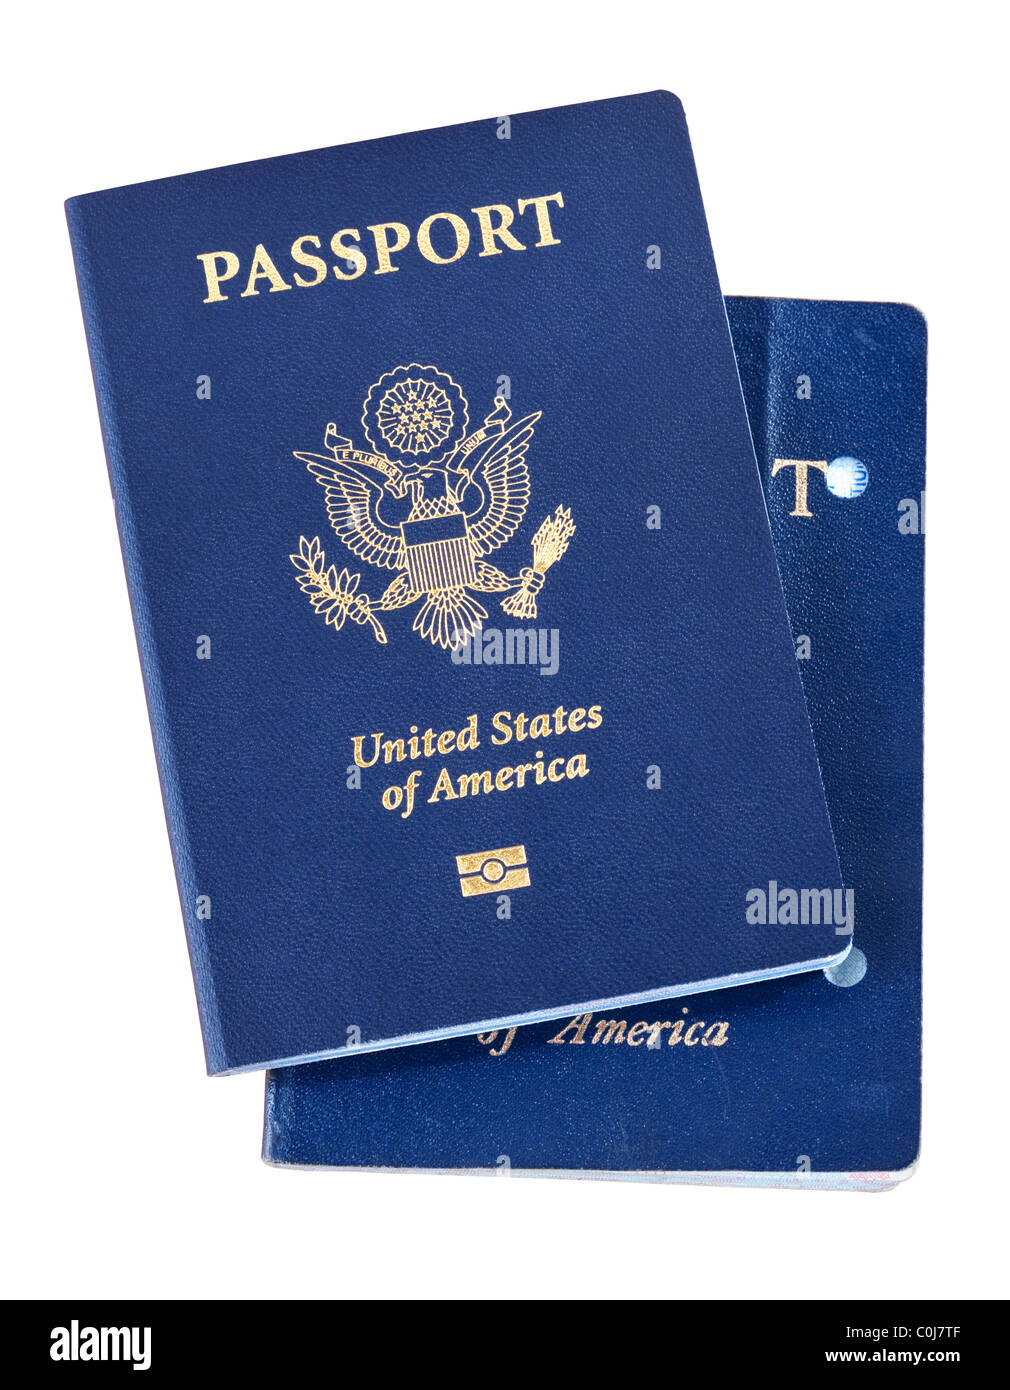 New electronic passport with old canceled non chipped version - Stock Image